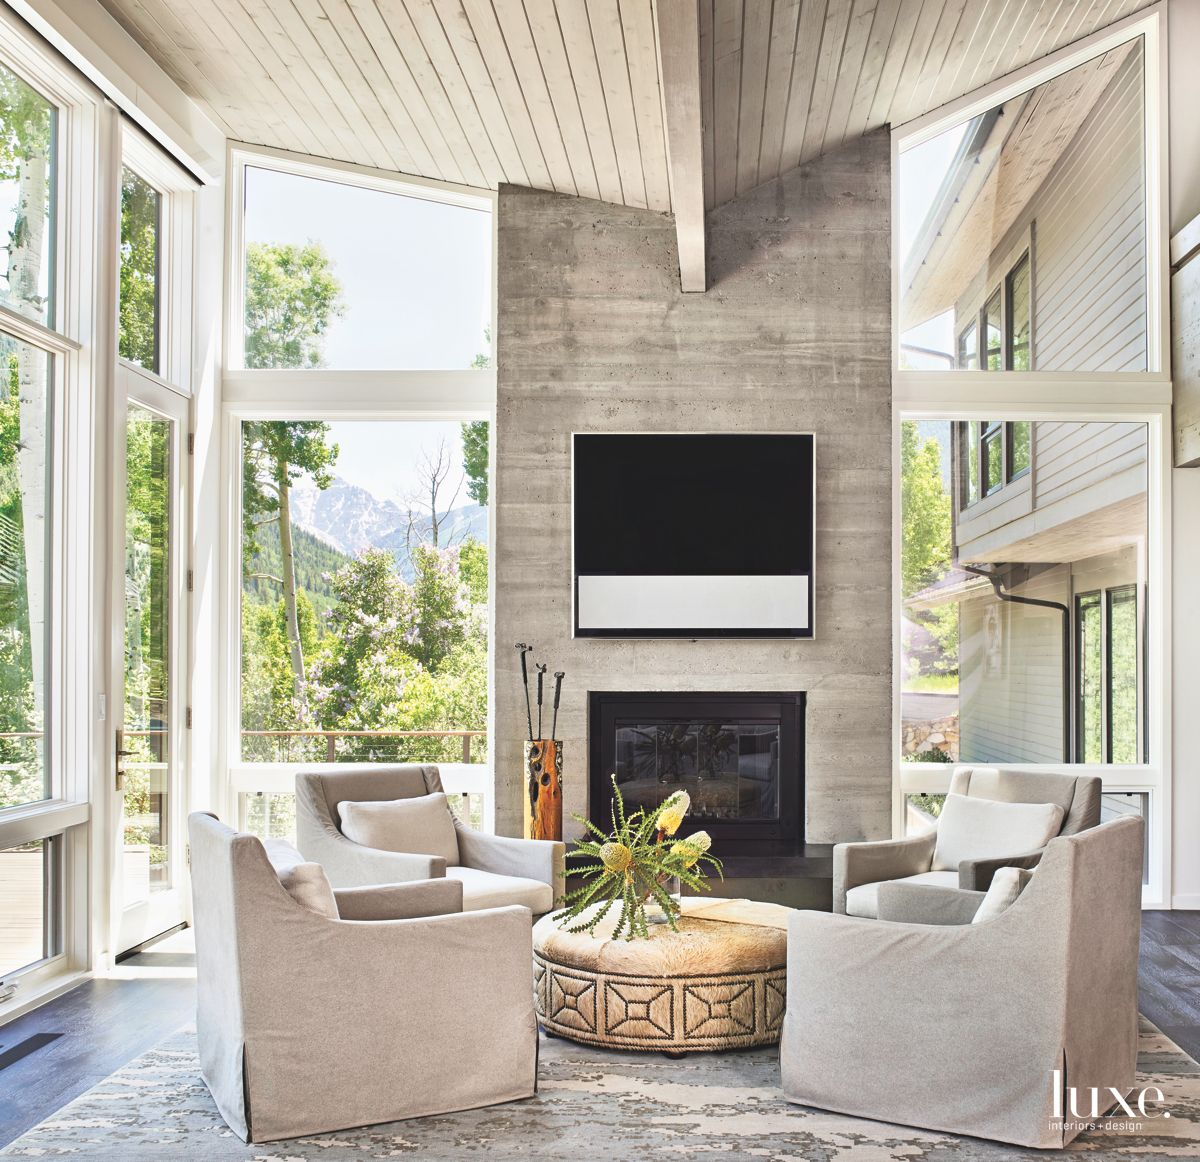 Concrete Fireplace with Mounted Television Living Room